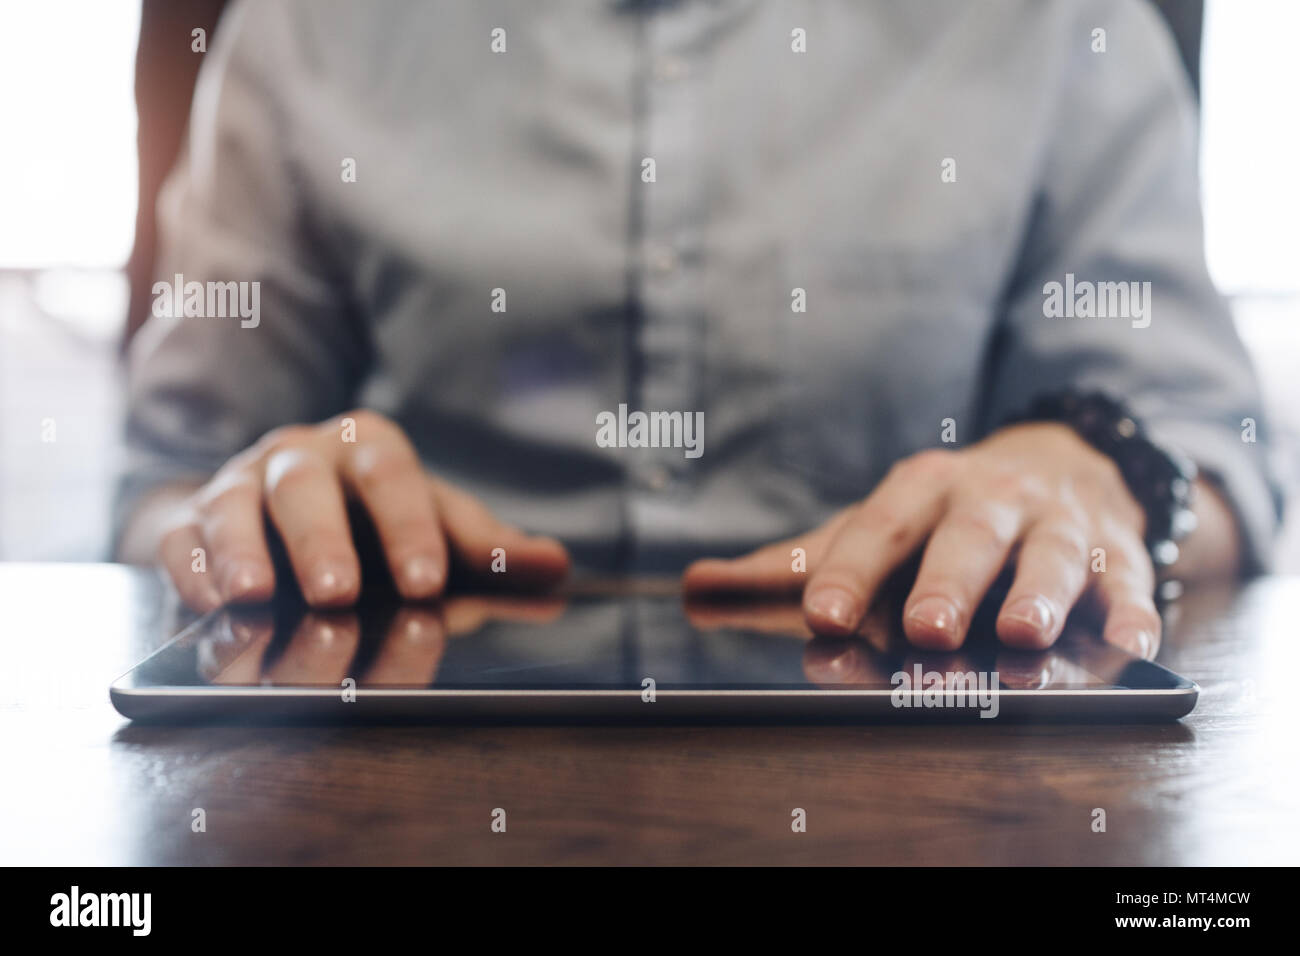 Account manager working and typing on modern tablet. Tablet close up on wooden desk in a modern open office. Men's hands touching screen tablet - Stock Image